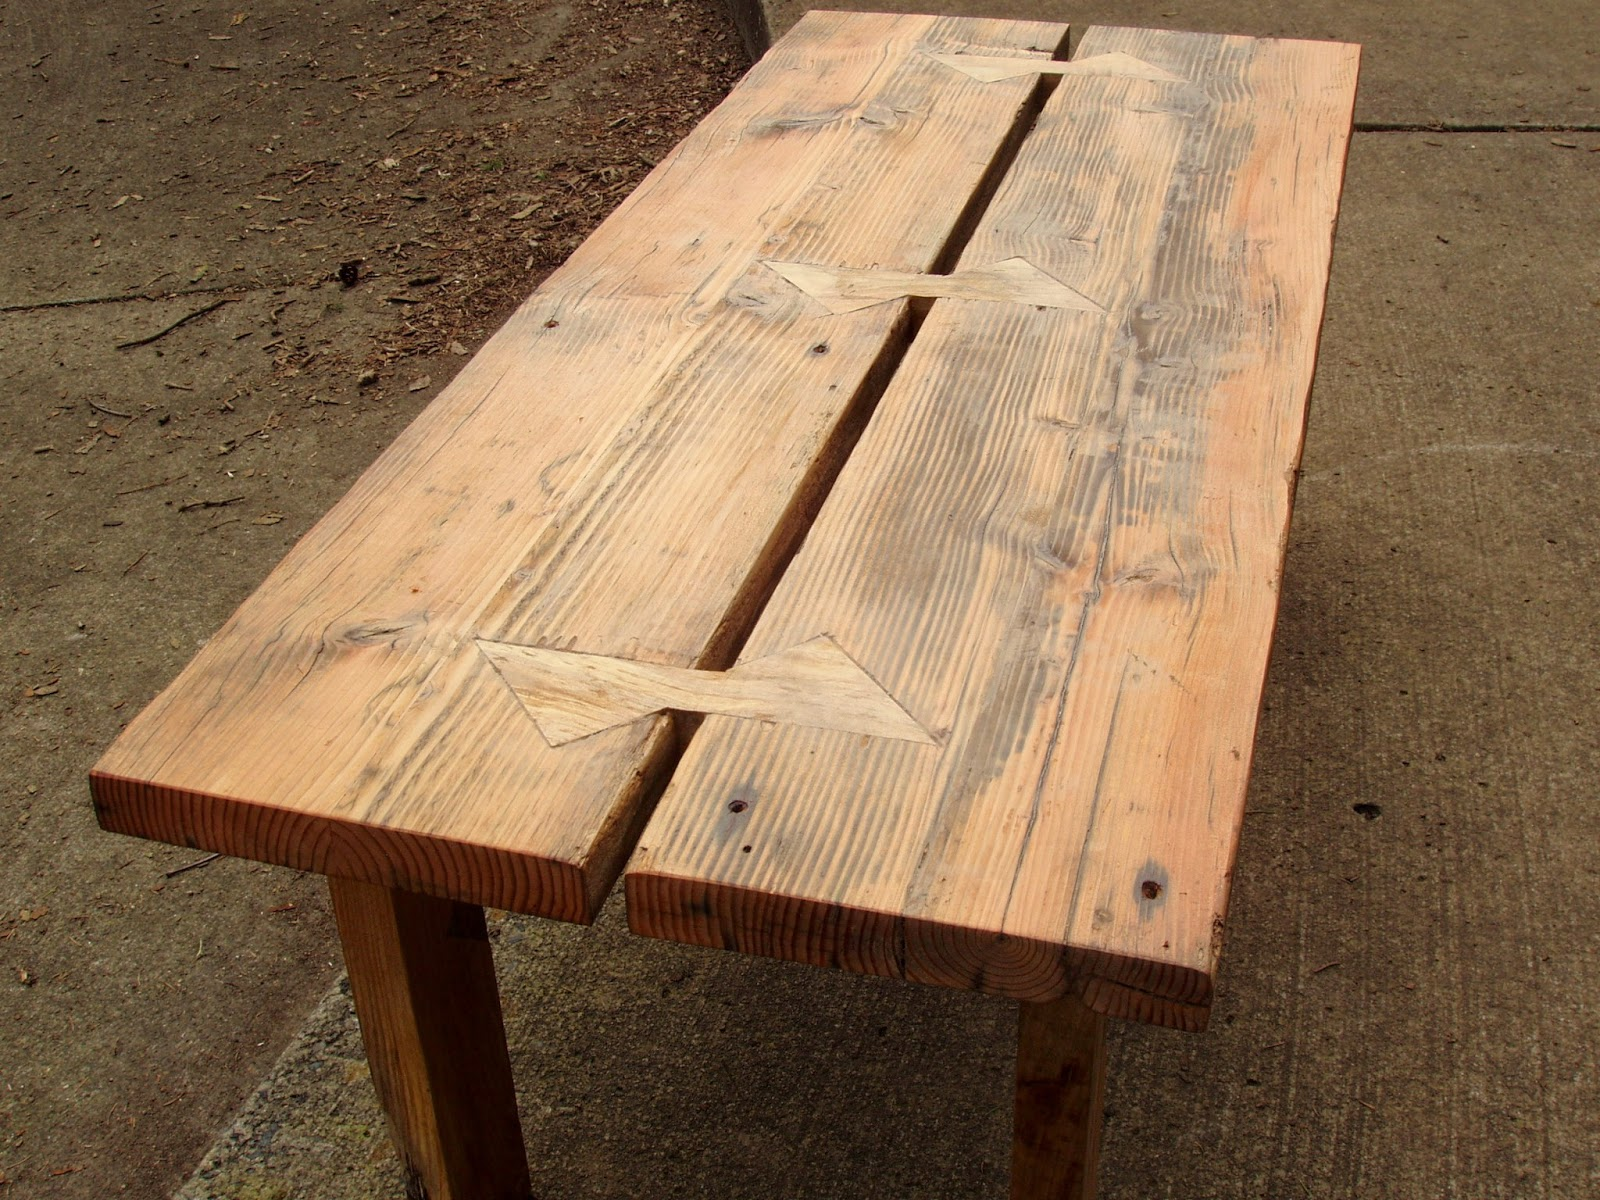 Reclaimed Wood Furniture Portland Oregon Images Reclaimed